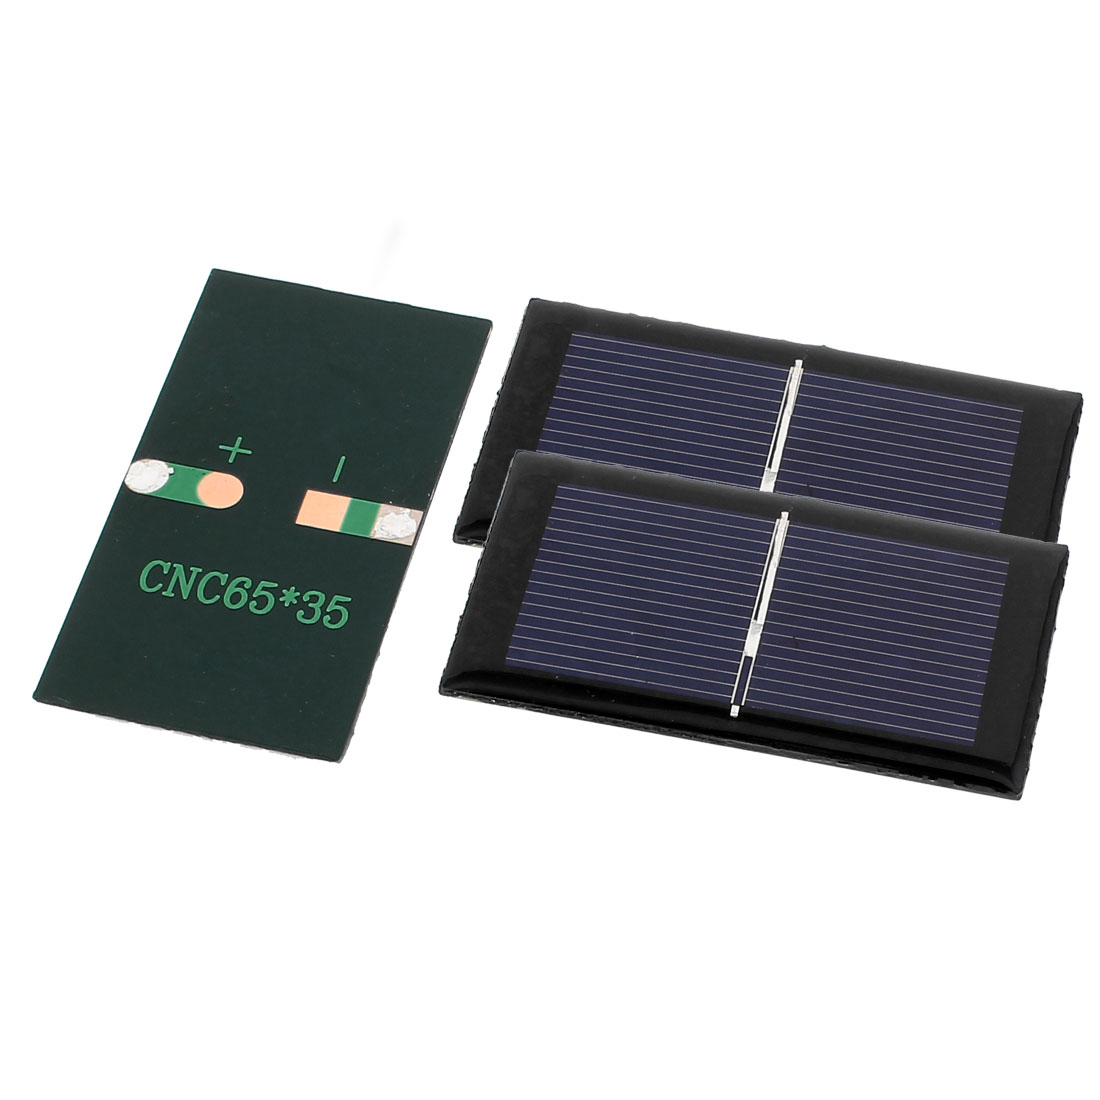 3 Pcs 0.5V 0.15W DIY Polycrystallinesilicon Solar Panel Power Cell Battery Charger 65mm x 35mm